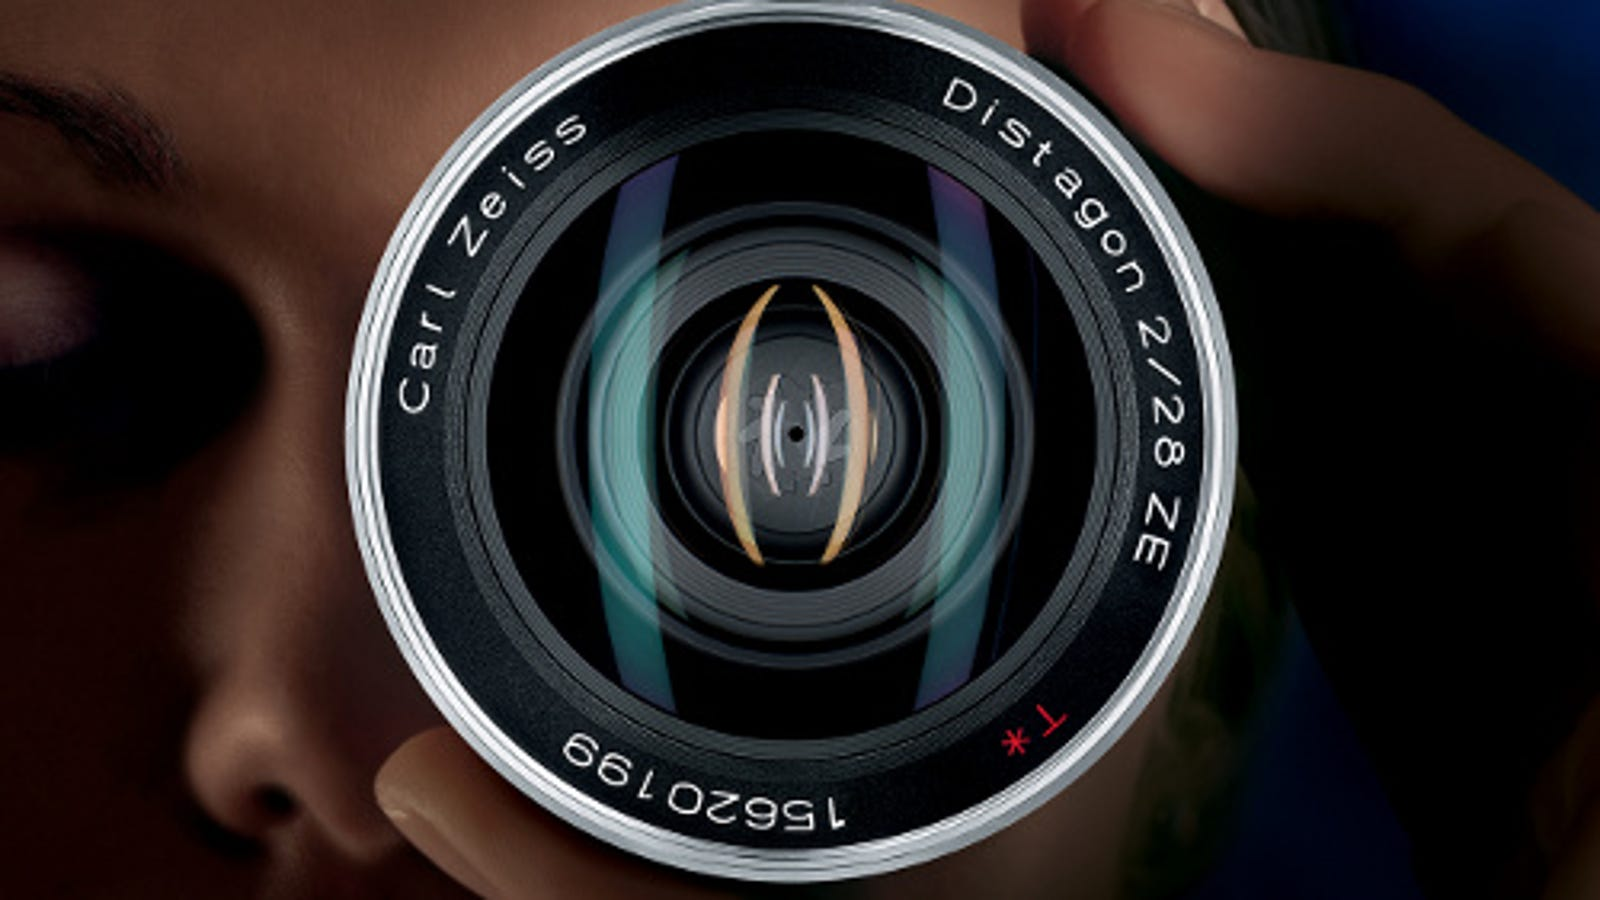 Carl Zeiss Wants A Smaller Camera—Micro Four Thirds Lenses